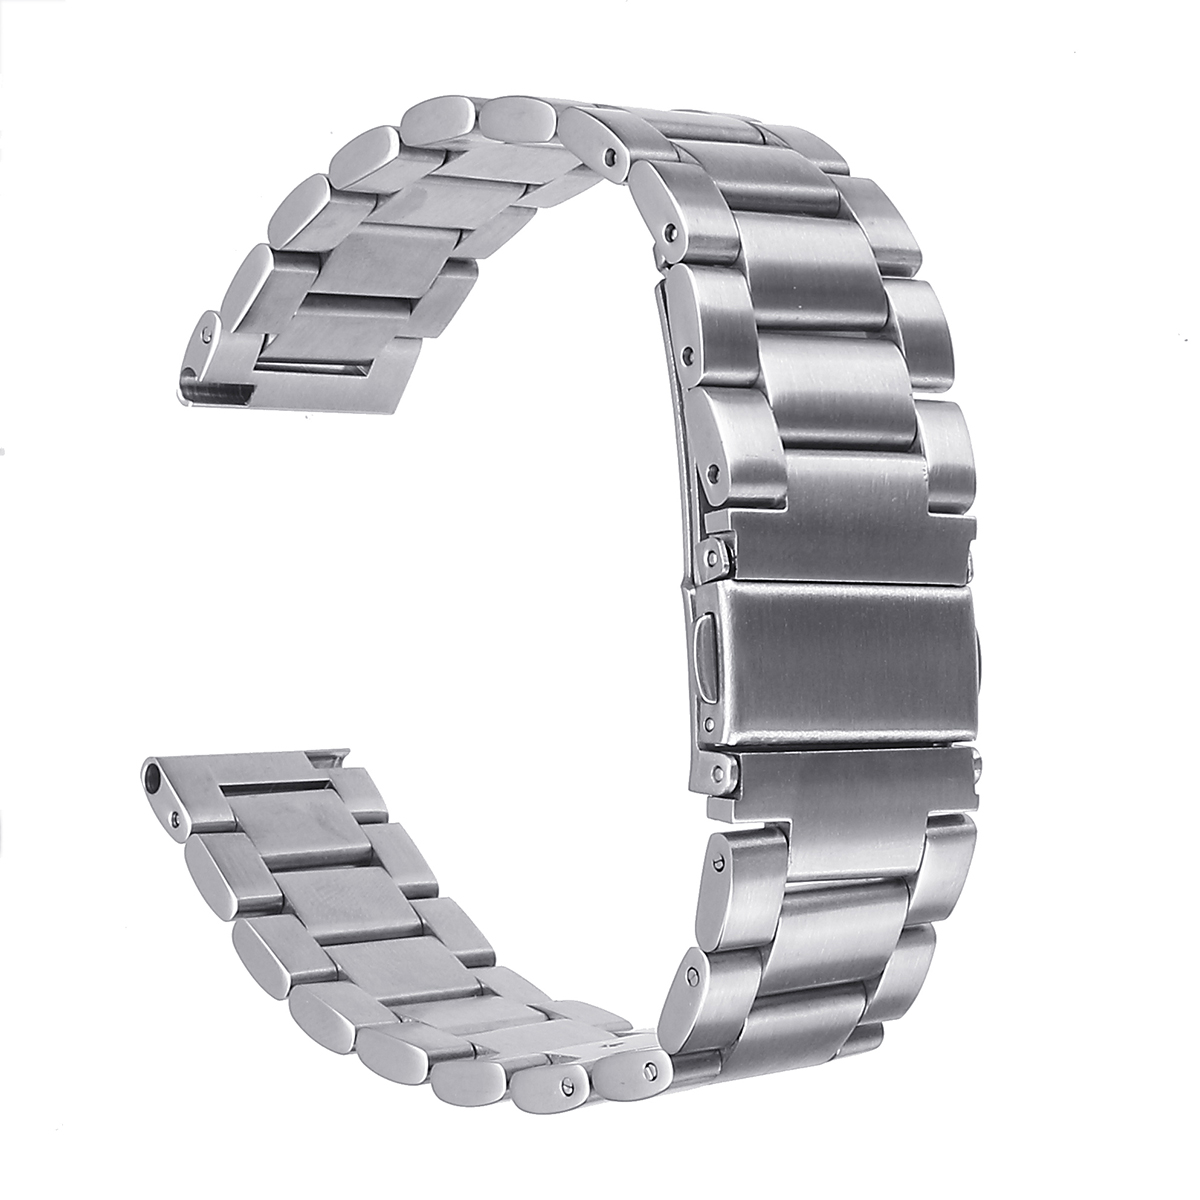 Stainless Steel Watch Band Replacement For Samsung Galaxy Gear S2